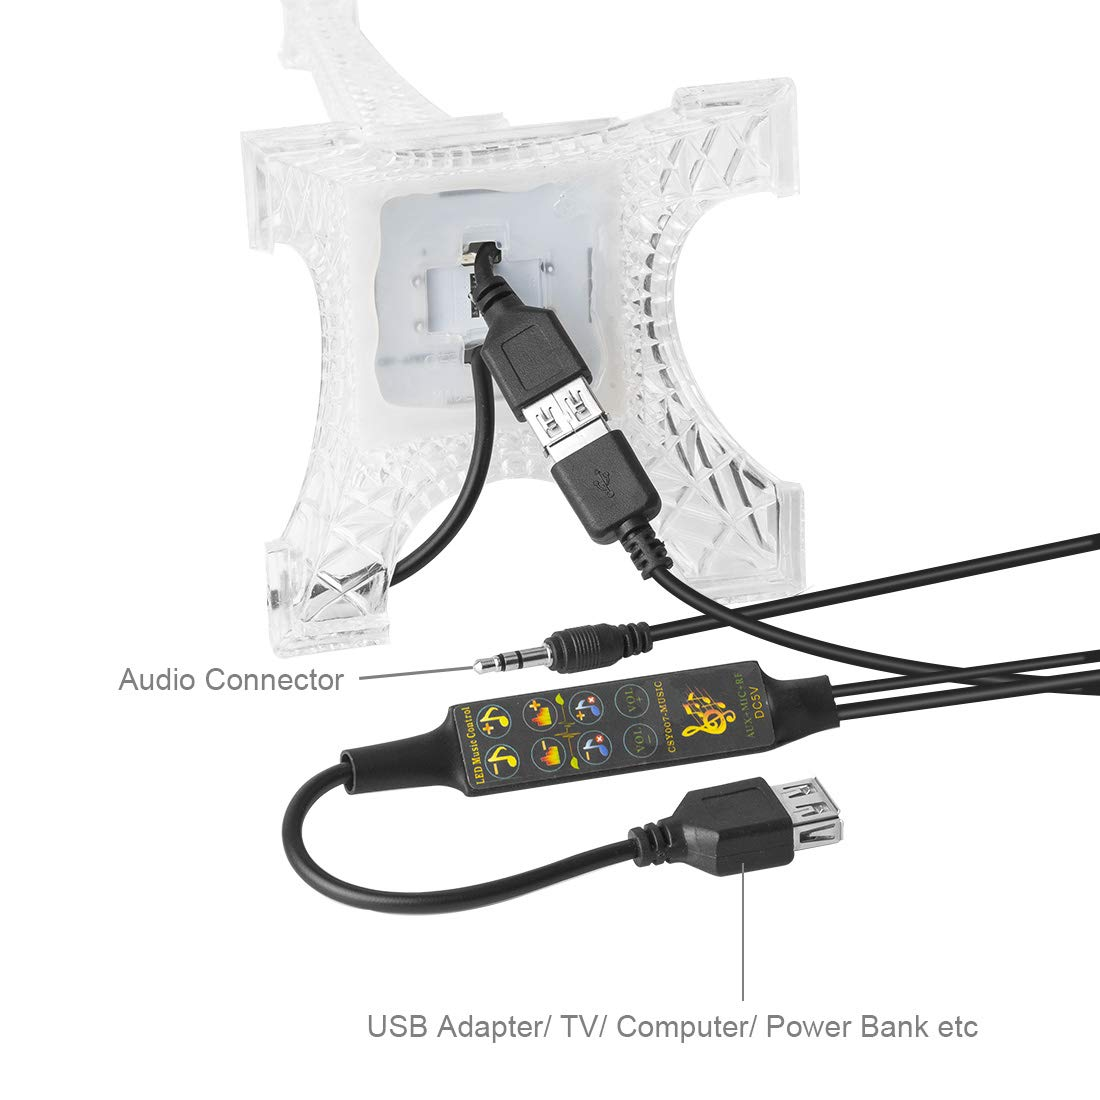 BTF-LIGHTING USB Music Built-in Mic Dream Color Controller CSY07 Remote Control 512 Pixels for Eiffel Tower LED